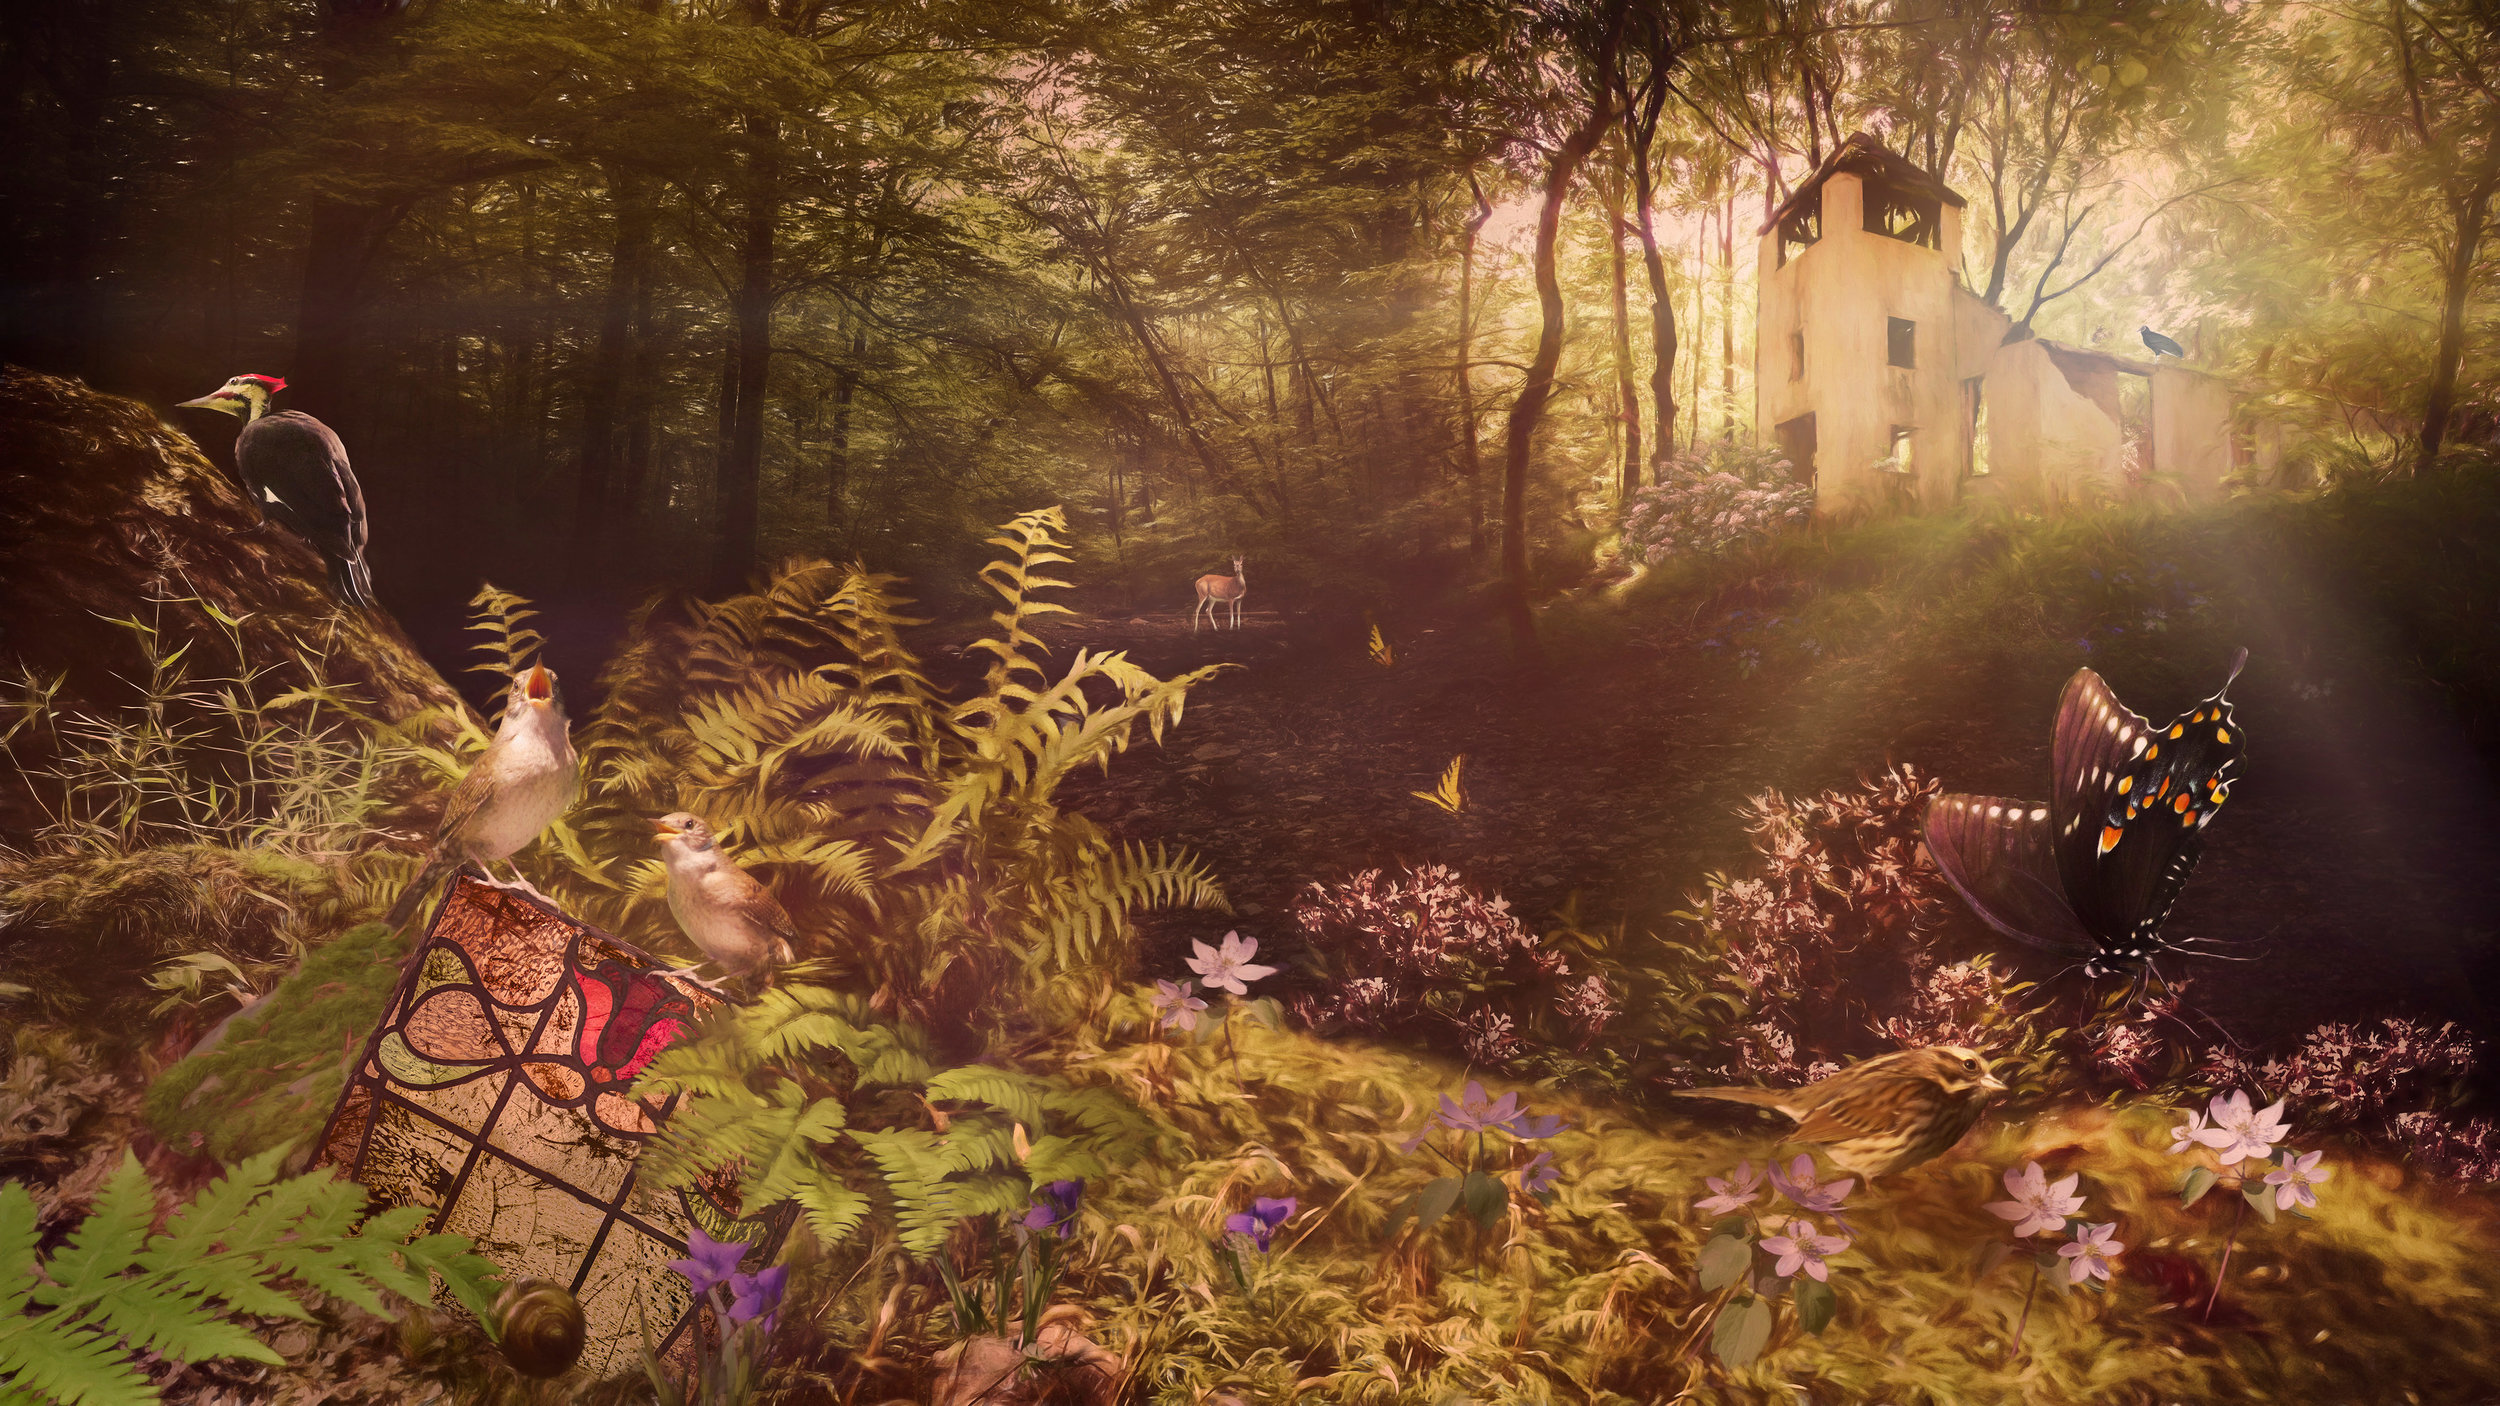 The Wren Sings a Hymn in the Forest - Archival Pigment Print on Hahnemühle Fine Art Rag20